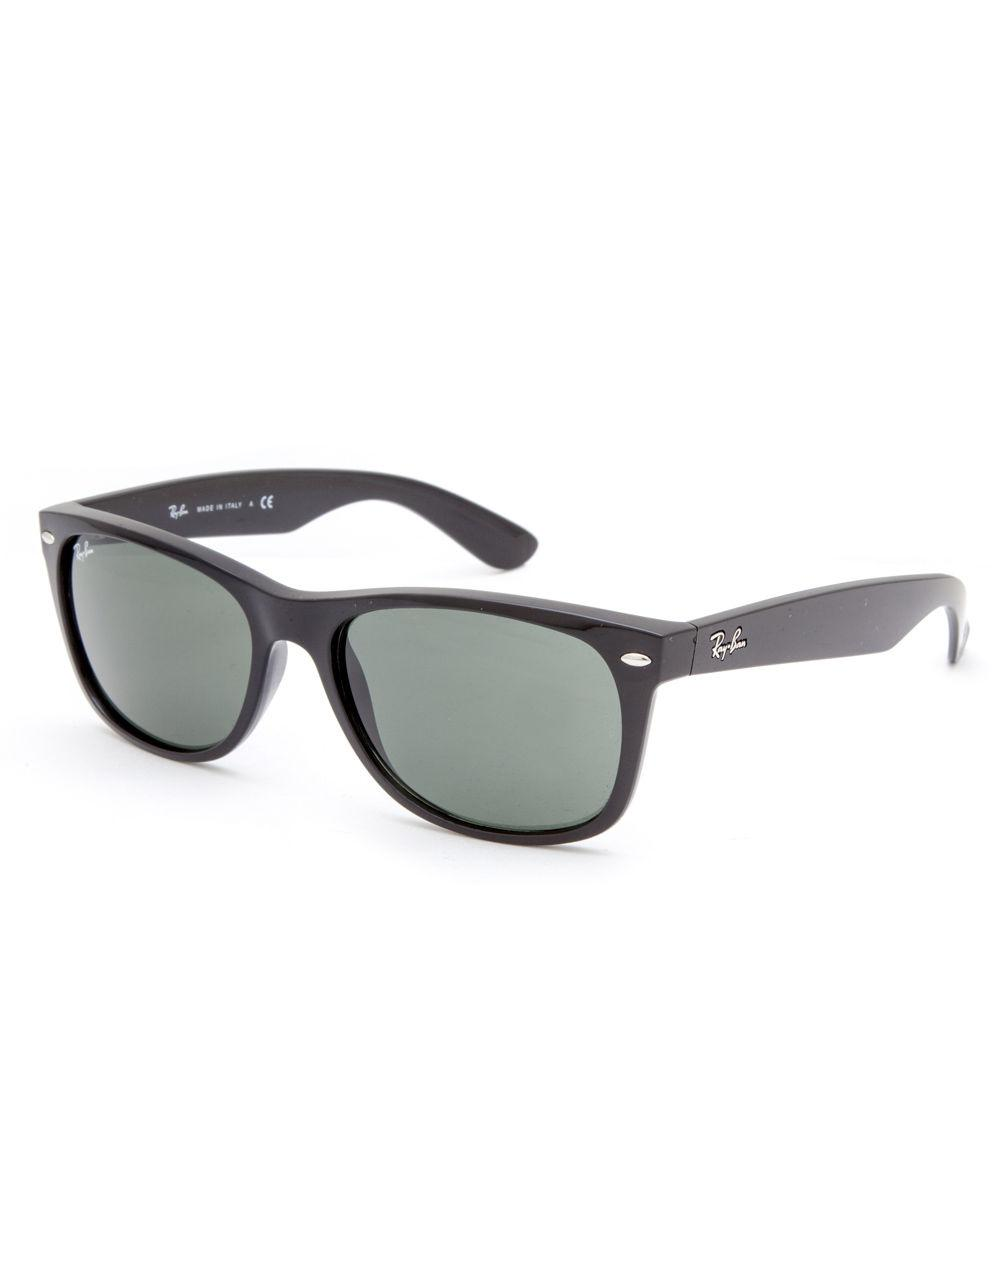 b7ee2e0a58 Lyst - Ray-Ban New Wayfarer Sunglasses in Black for Men - Save 12%